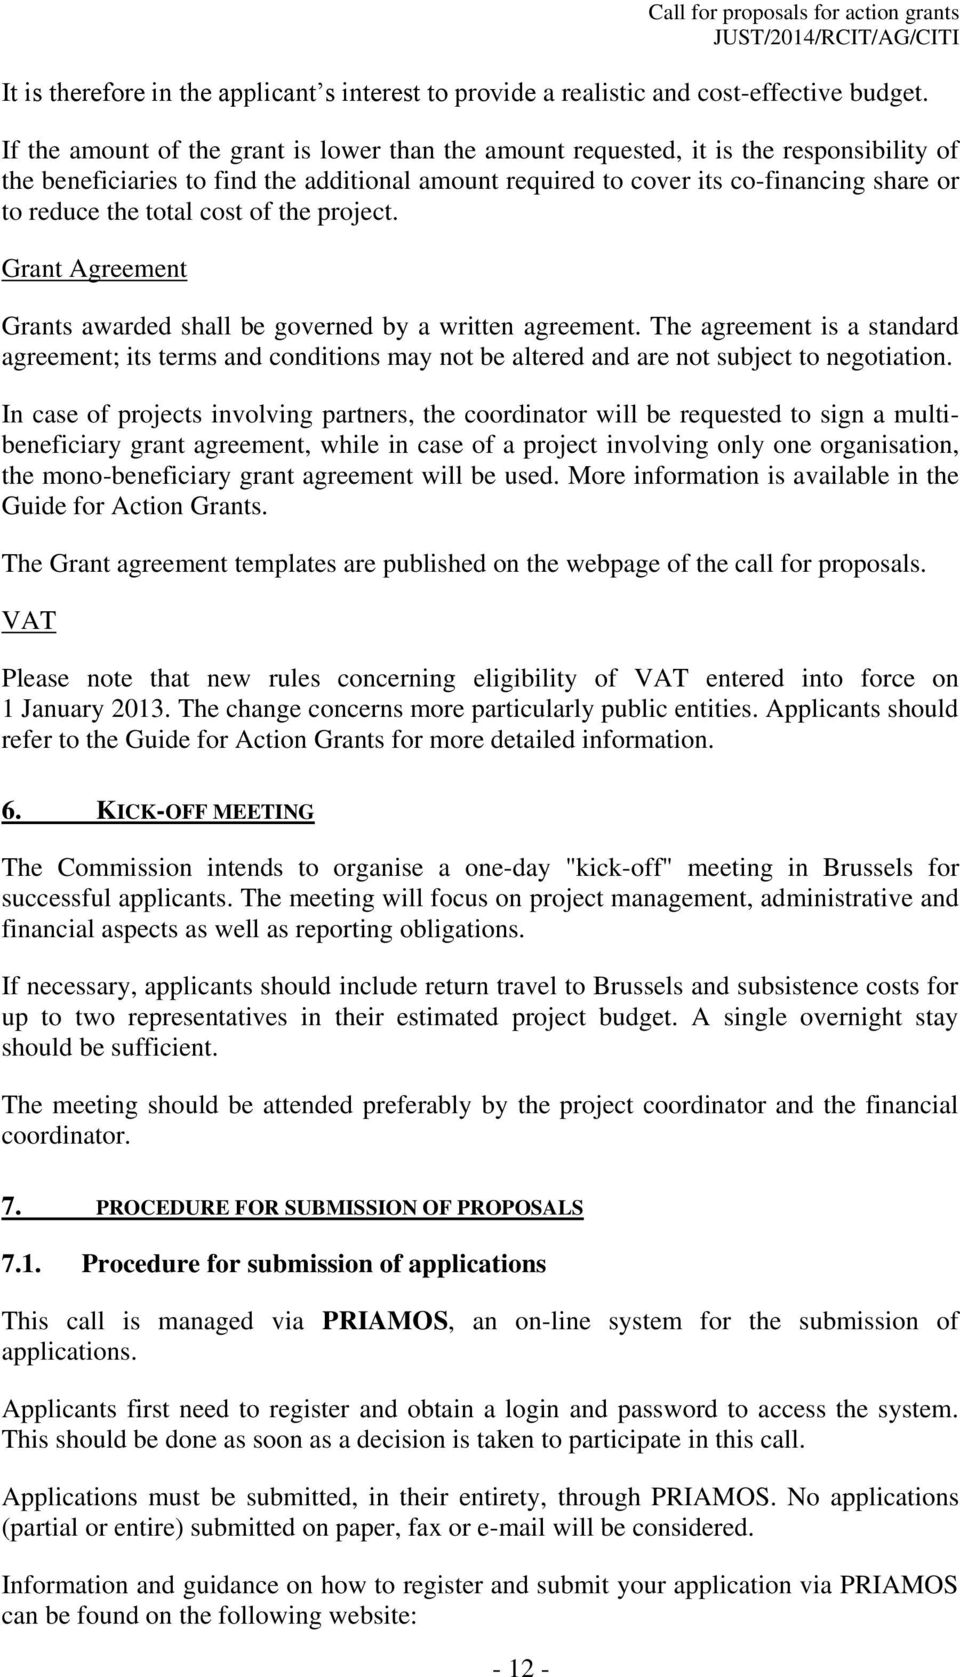 total cost of the project. Grant Agreement Grants awarded shall be governed by a written agreement.